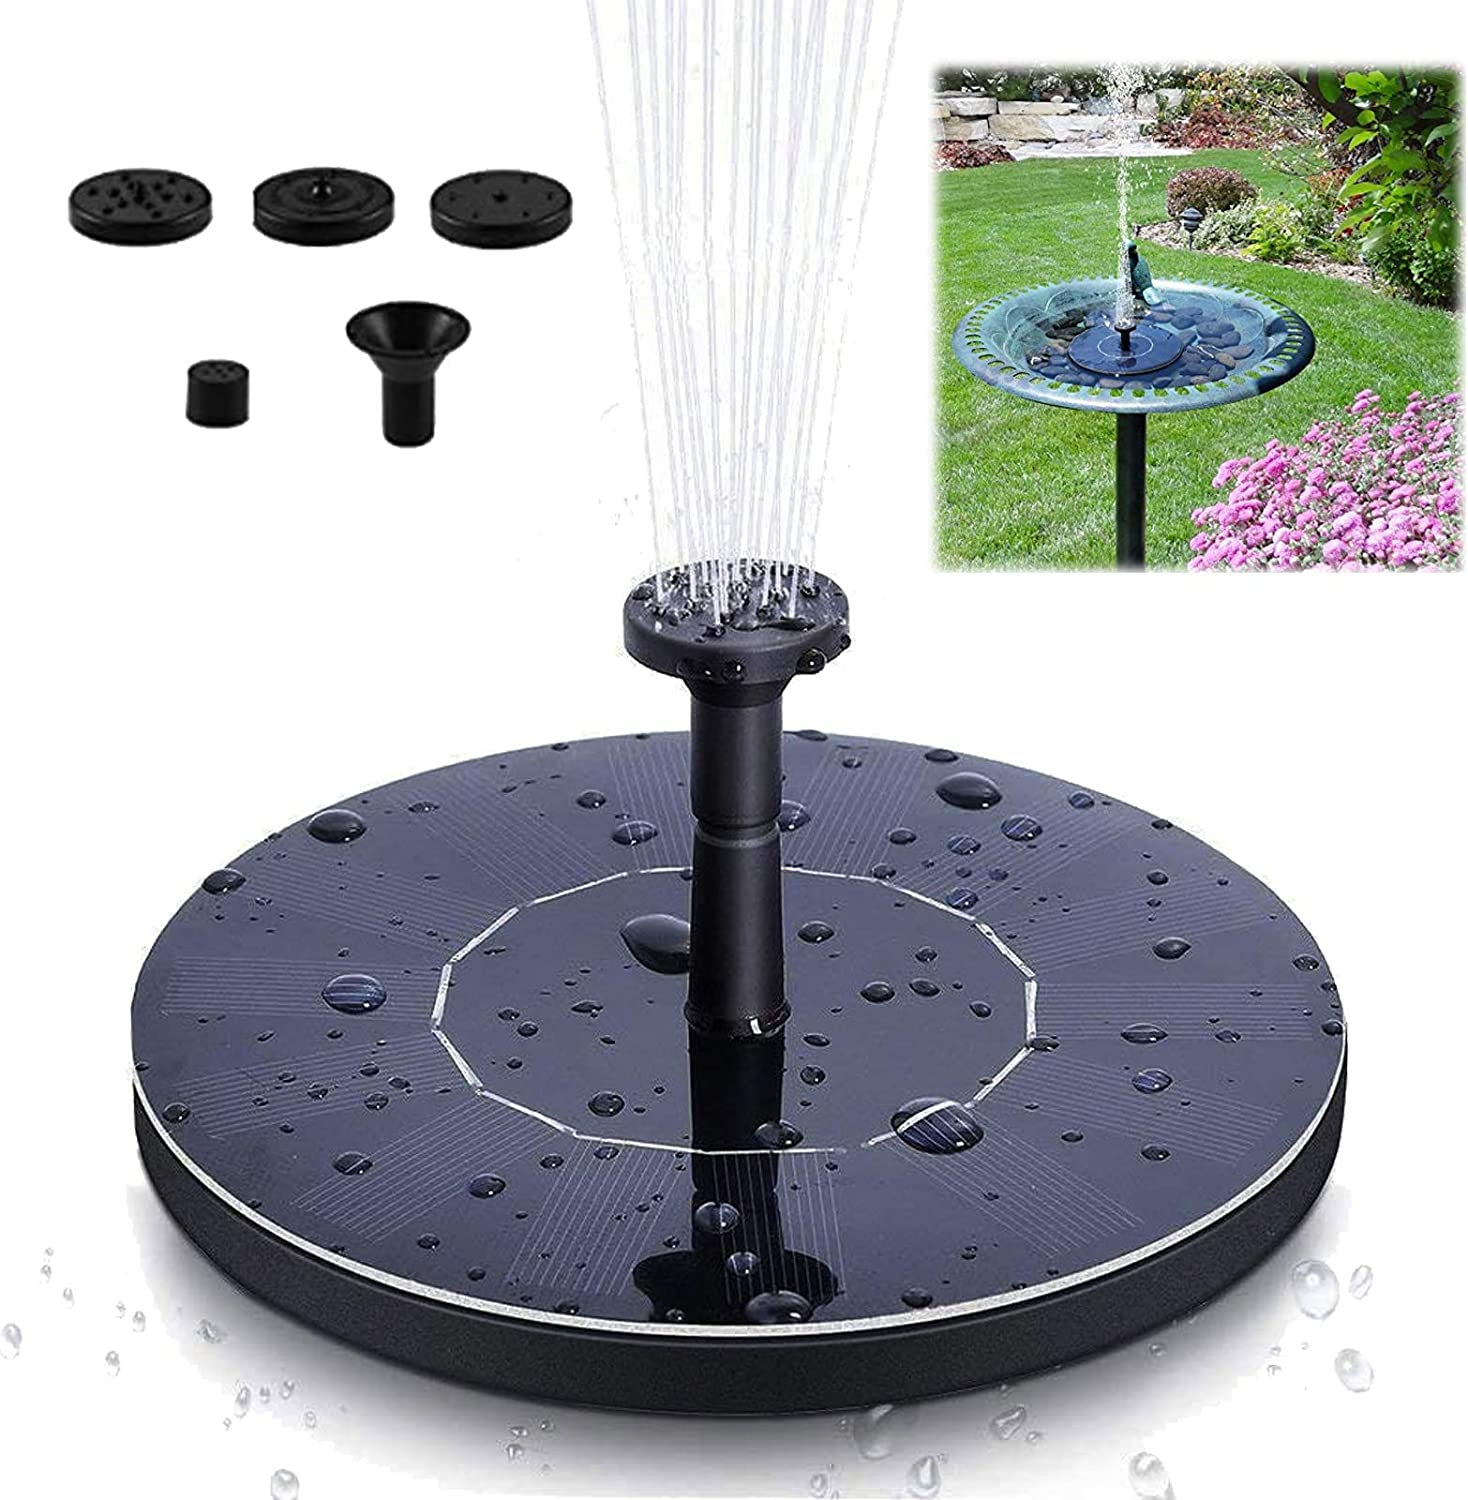 Blizzow Solar Fountain Pump for Bird Bath, Solar Water Fountain with 4 Nozzle, Free Standing Floating Solar Powered Water Fountains Pump for Patio, Pond, Garden, Pool, Fish Tank, Outdoor